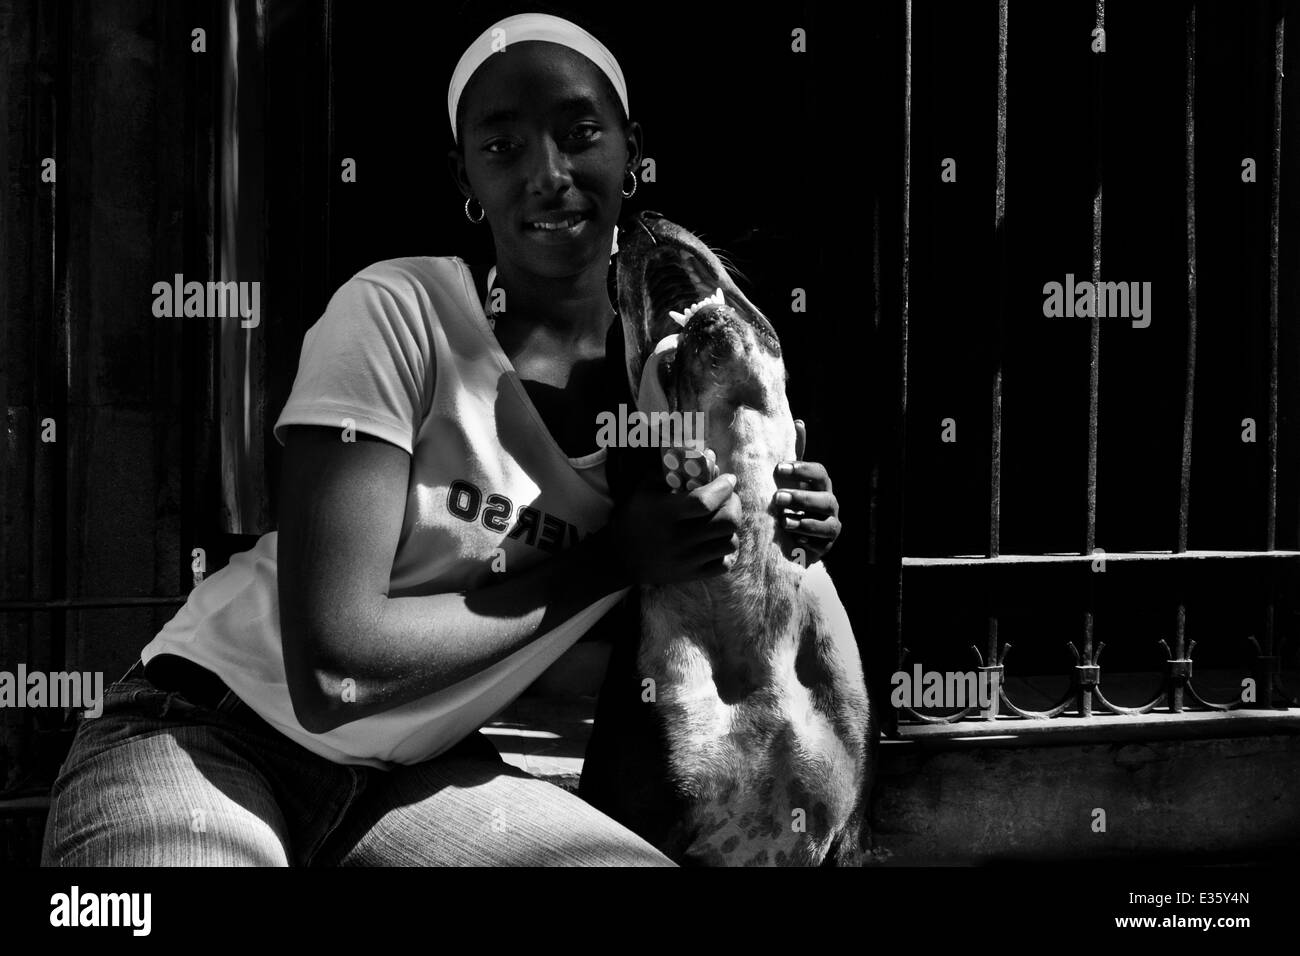 A Cuban woman poses for a picture with her amstaff dog during a sunny morning in Havana, Cuba. - Stock Image